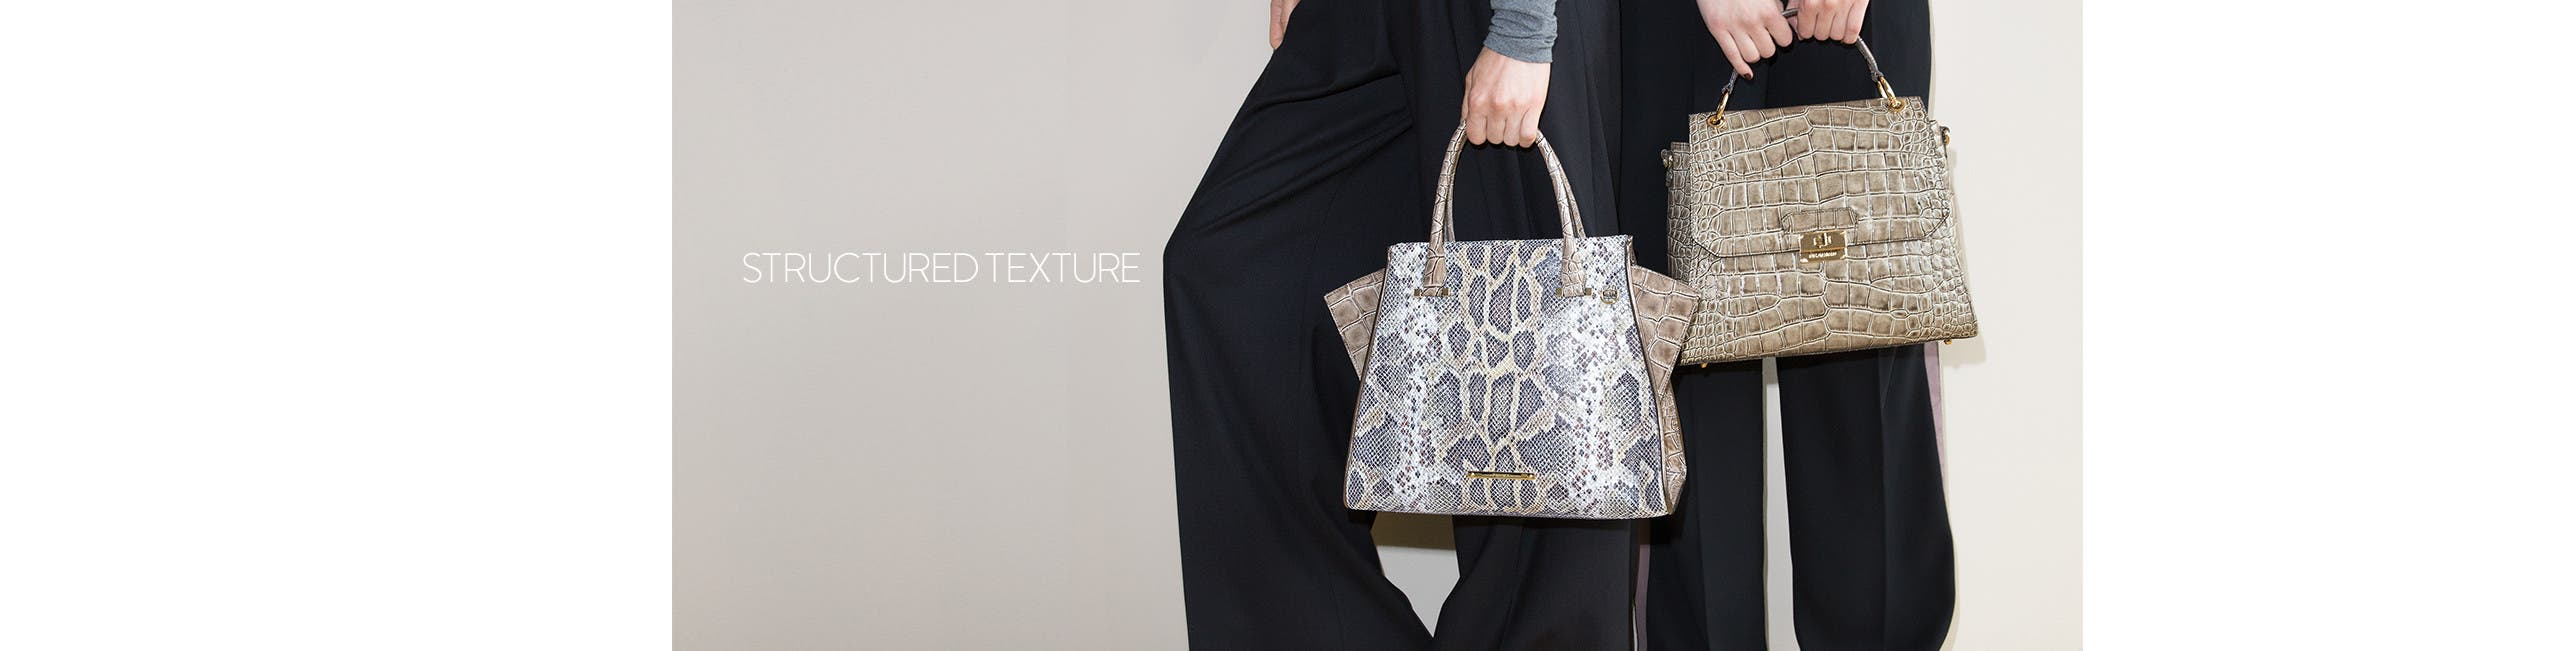 Structured texture: handbags.